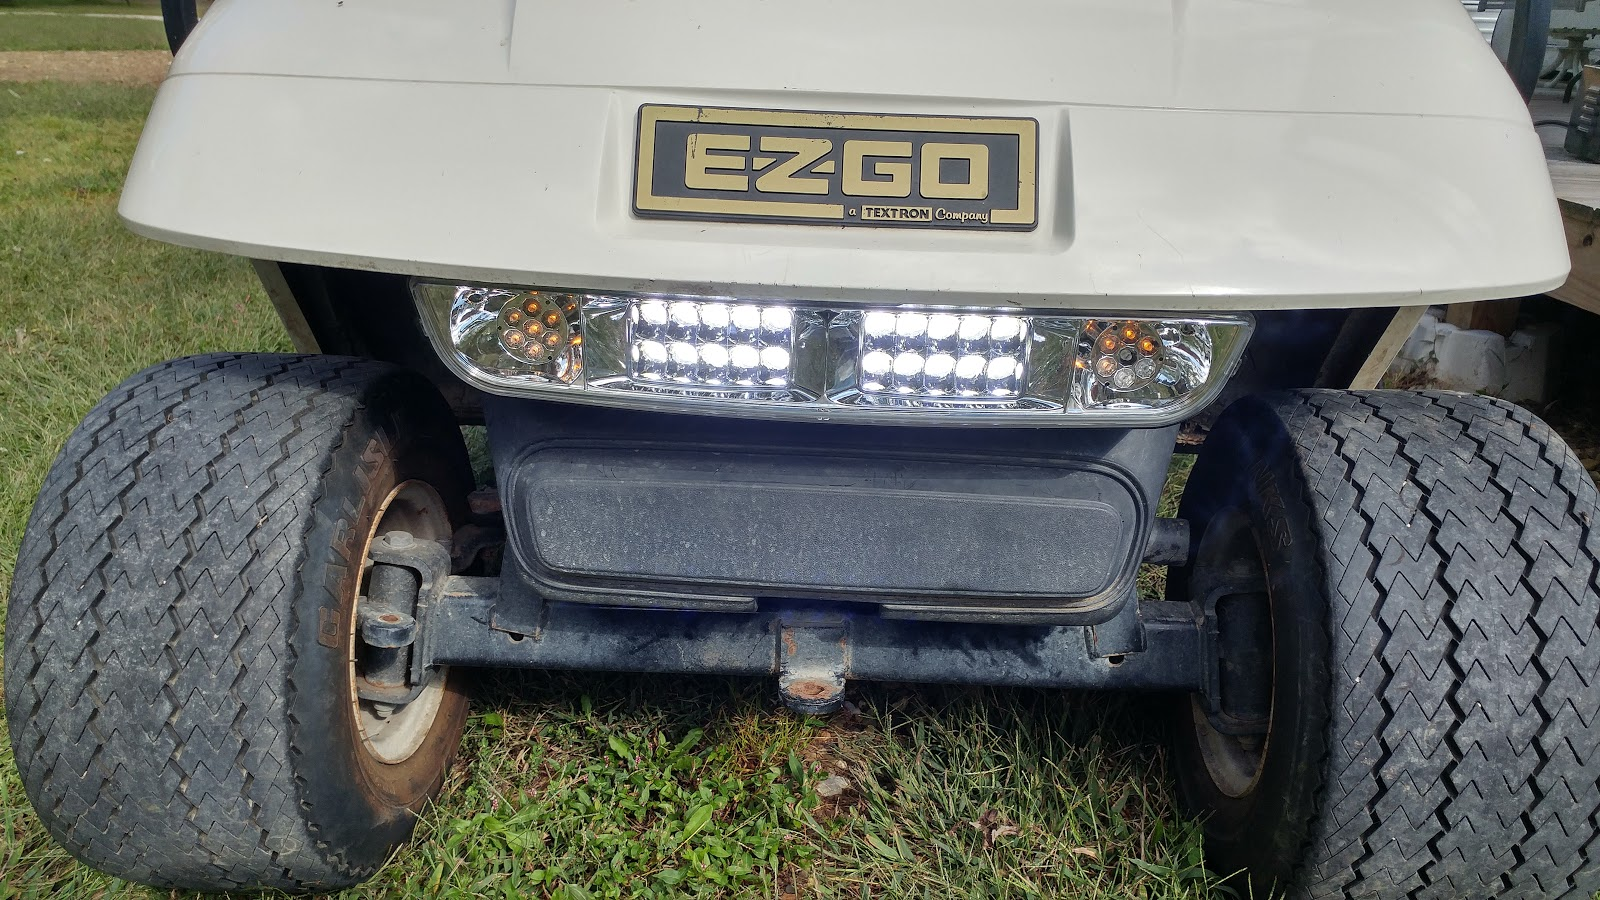 Golf Cart Lights Frequently Asked Questions (FAQ) Madjax Ezgo Txt Wiring Diagram on club car 48v wiring-diagram, club car precedent wiring-diagram, club car 36v wiring-diagram, club car ds wiring-diagram,